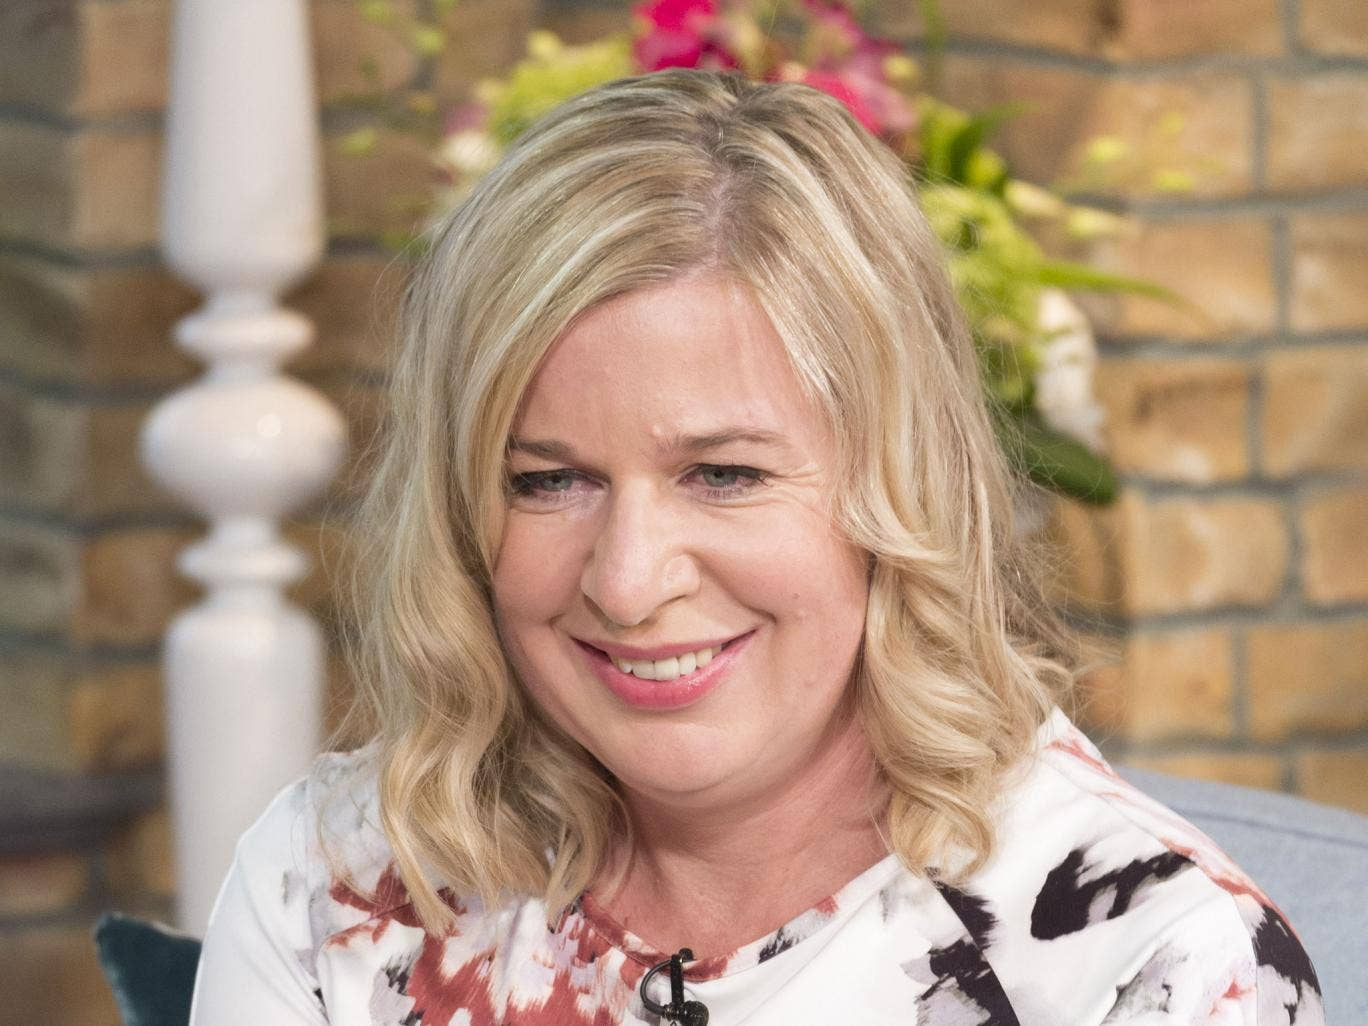 Katie Hopkins appearing on 'This Morning' after she purposefully put on 4 stone.